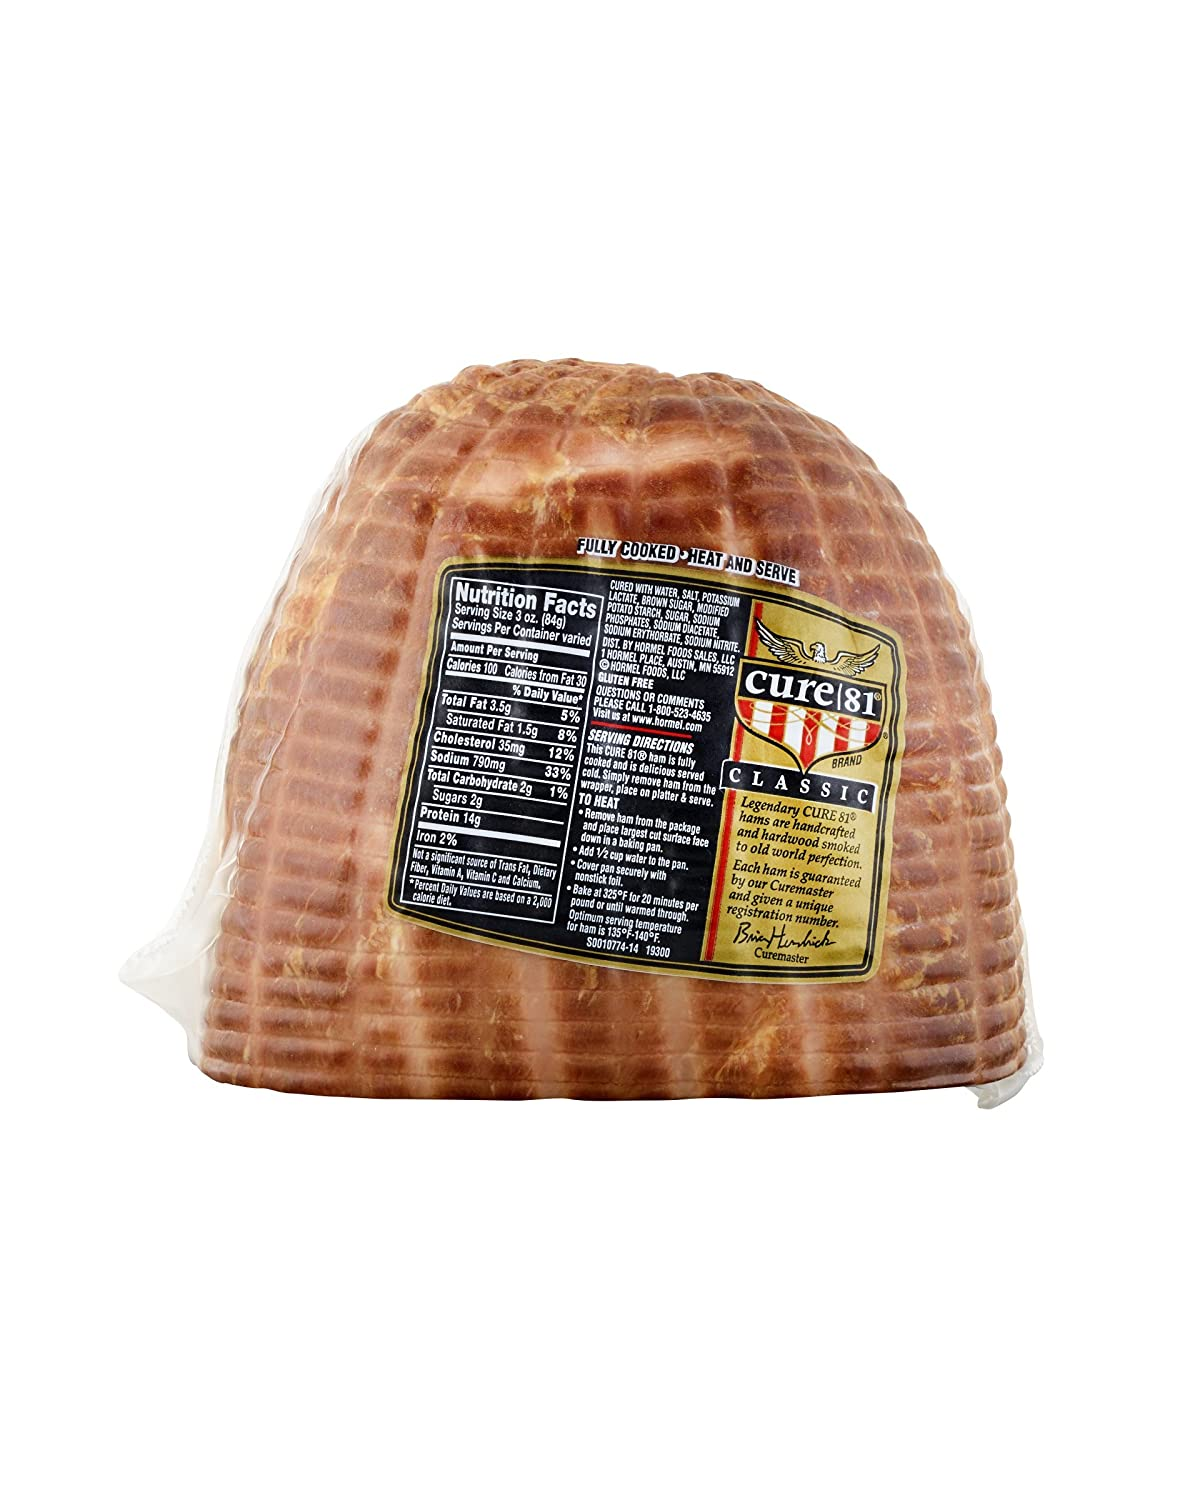 Bread ready® ham, smoked, water added, 67 oz slices, 6/2 lb.